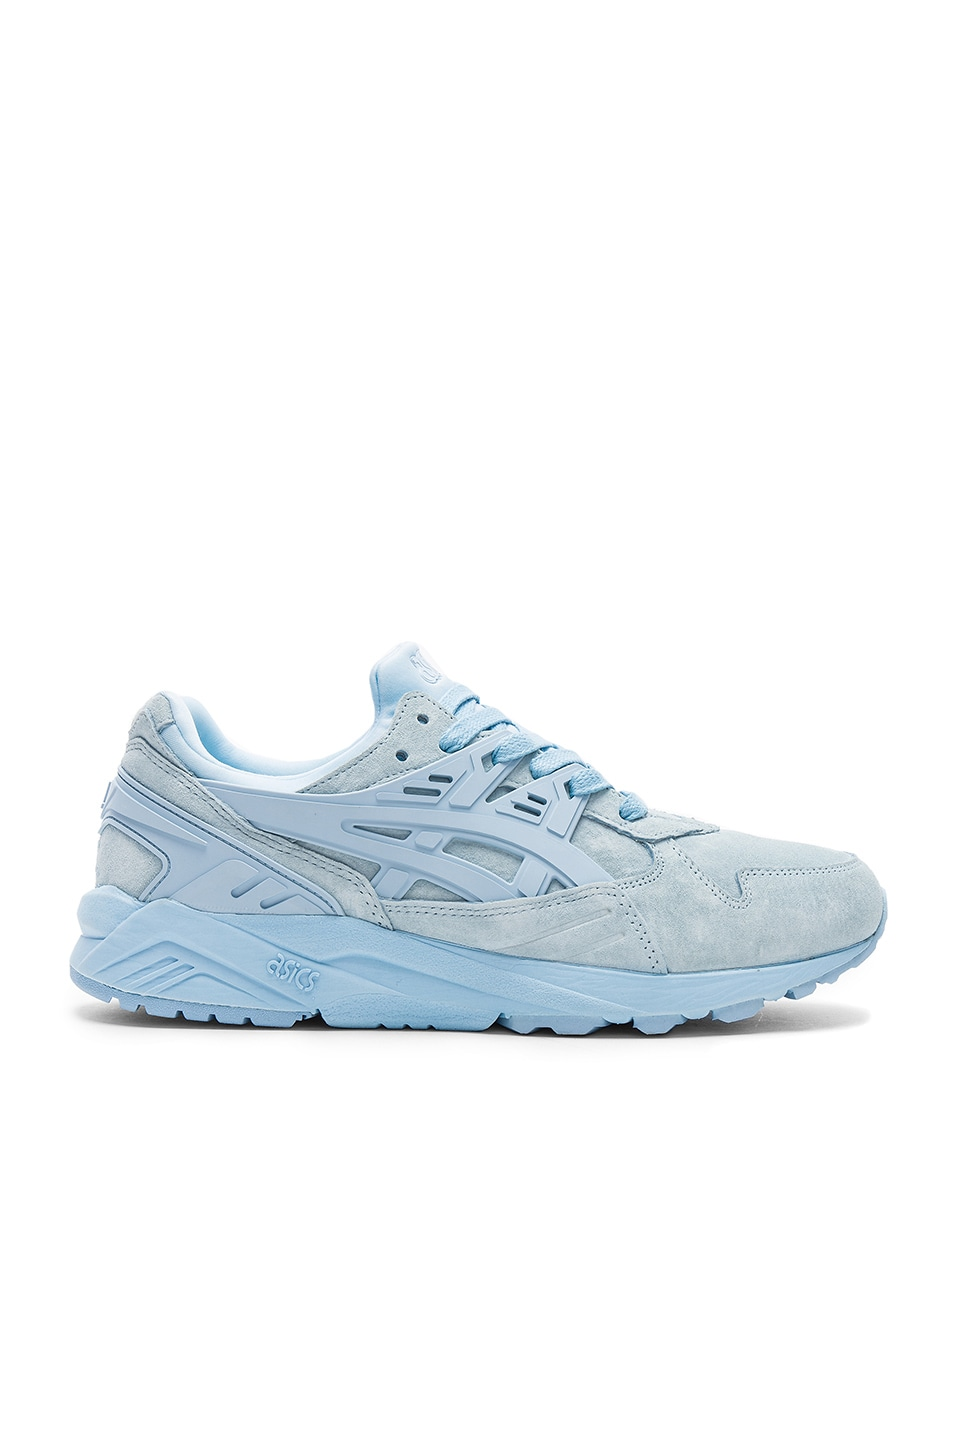 Gel Kayano Trainer by Asics